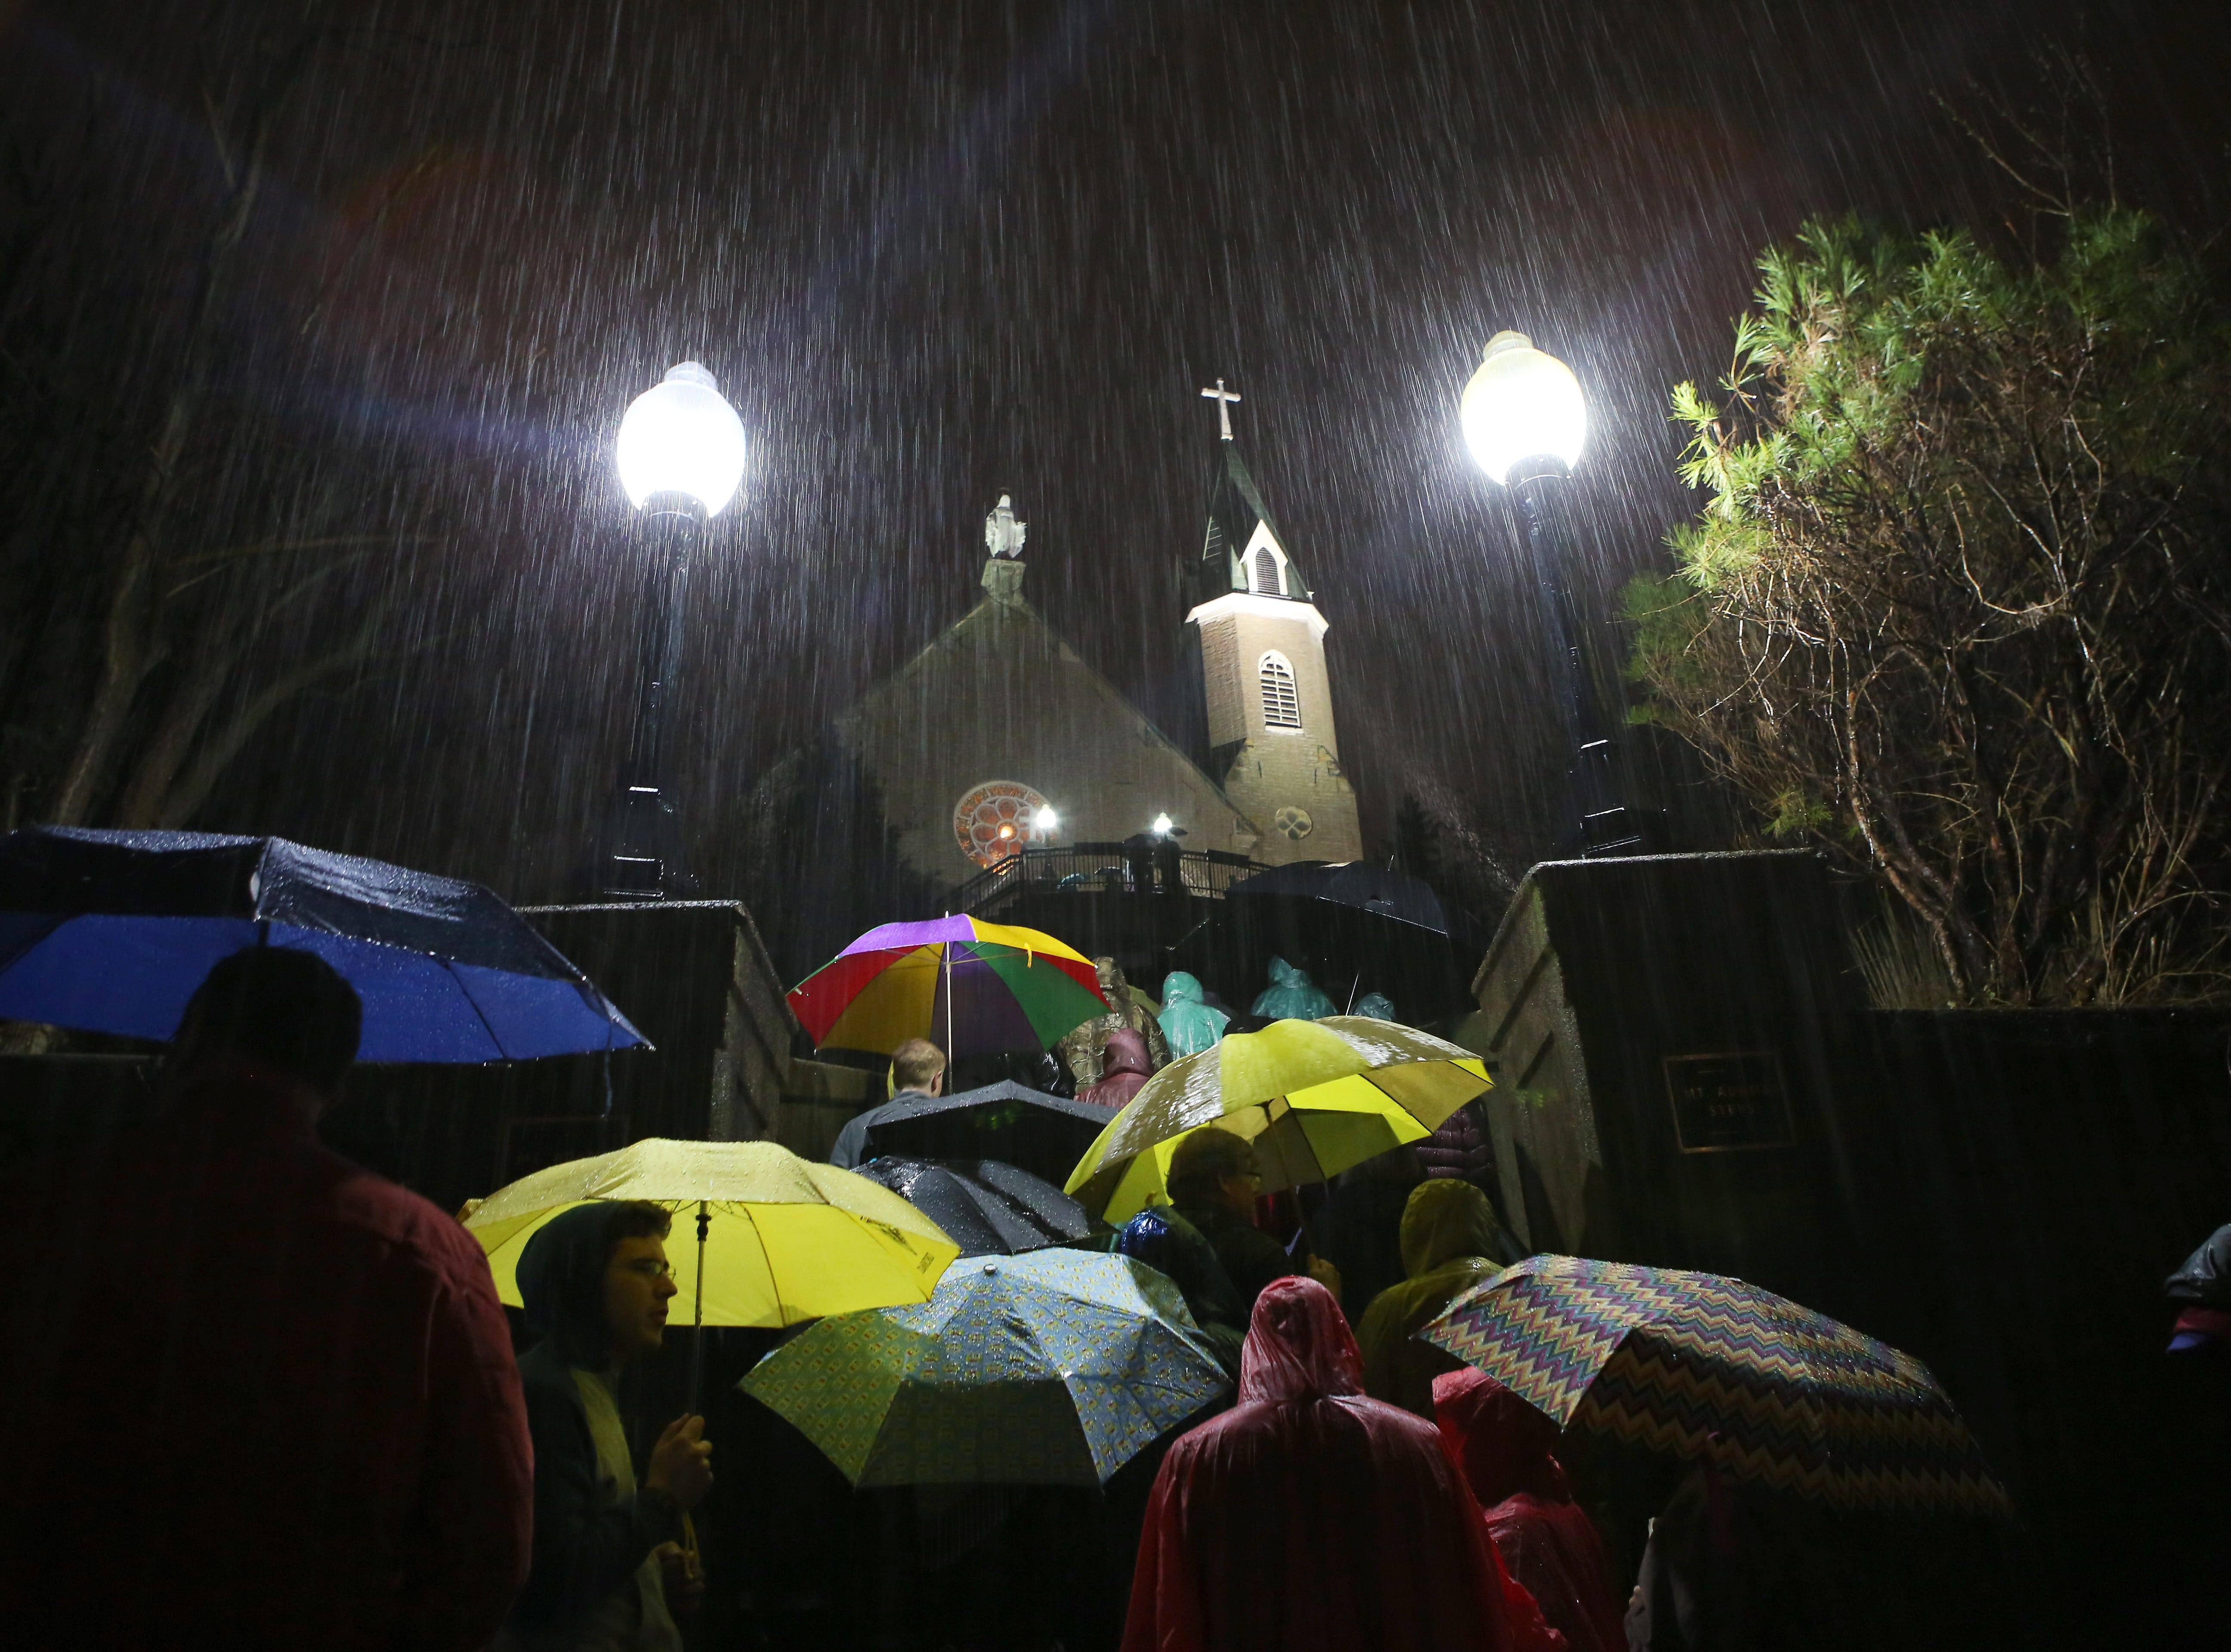 Despite the rain, people gather at midnight to pray the steps of Holy Cross-Immaculata Church in Mt. Adams Friday, April 3, 2015. This Good Friday pilgrimage was started approximately 150 years ago and draws thousands to pray the steps all day.